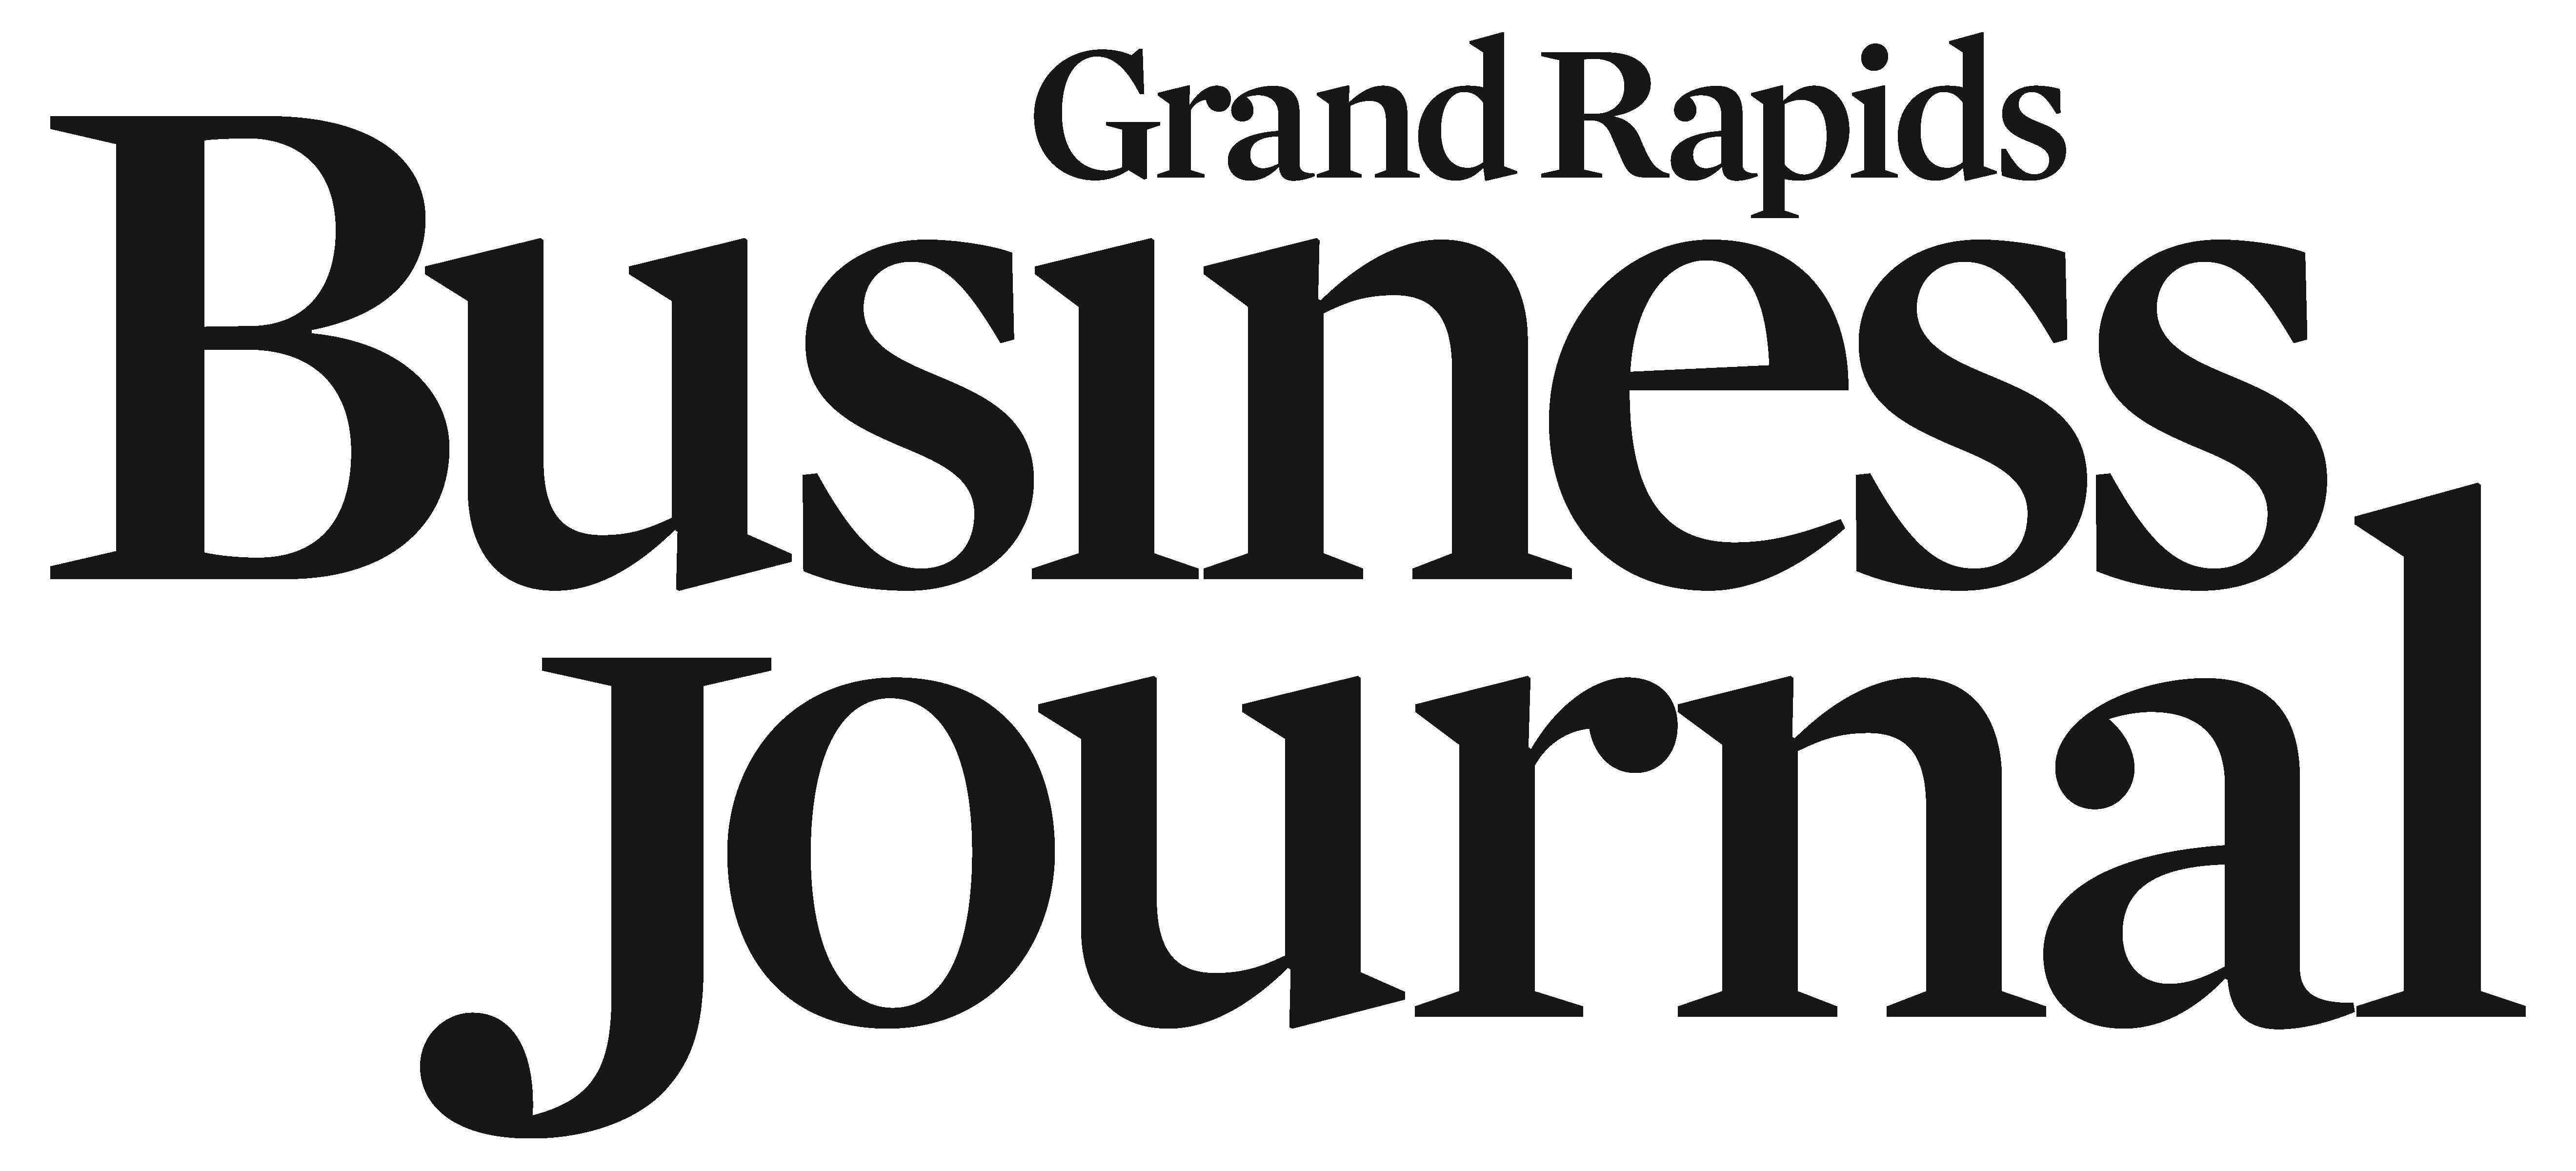 Grand Rapids Business Journal